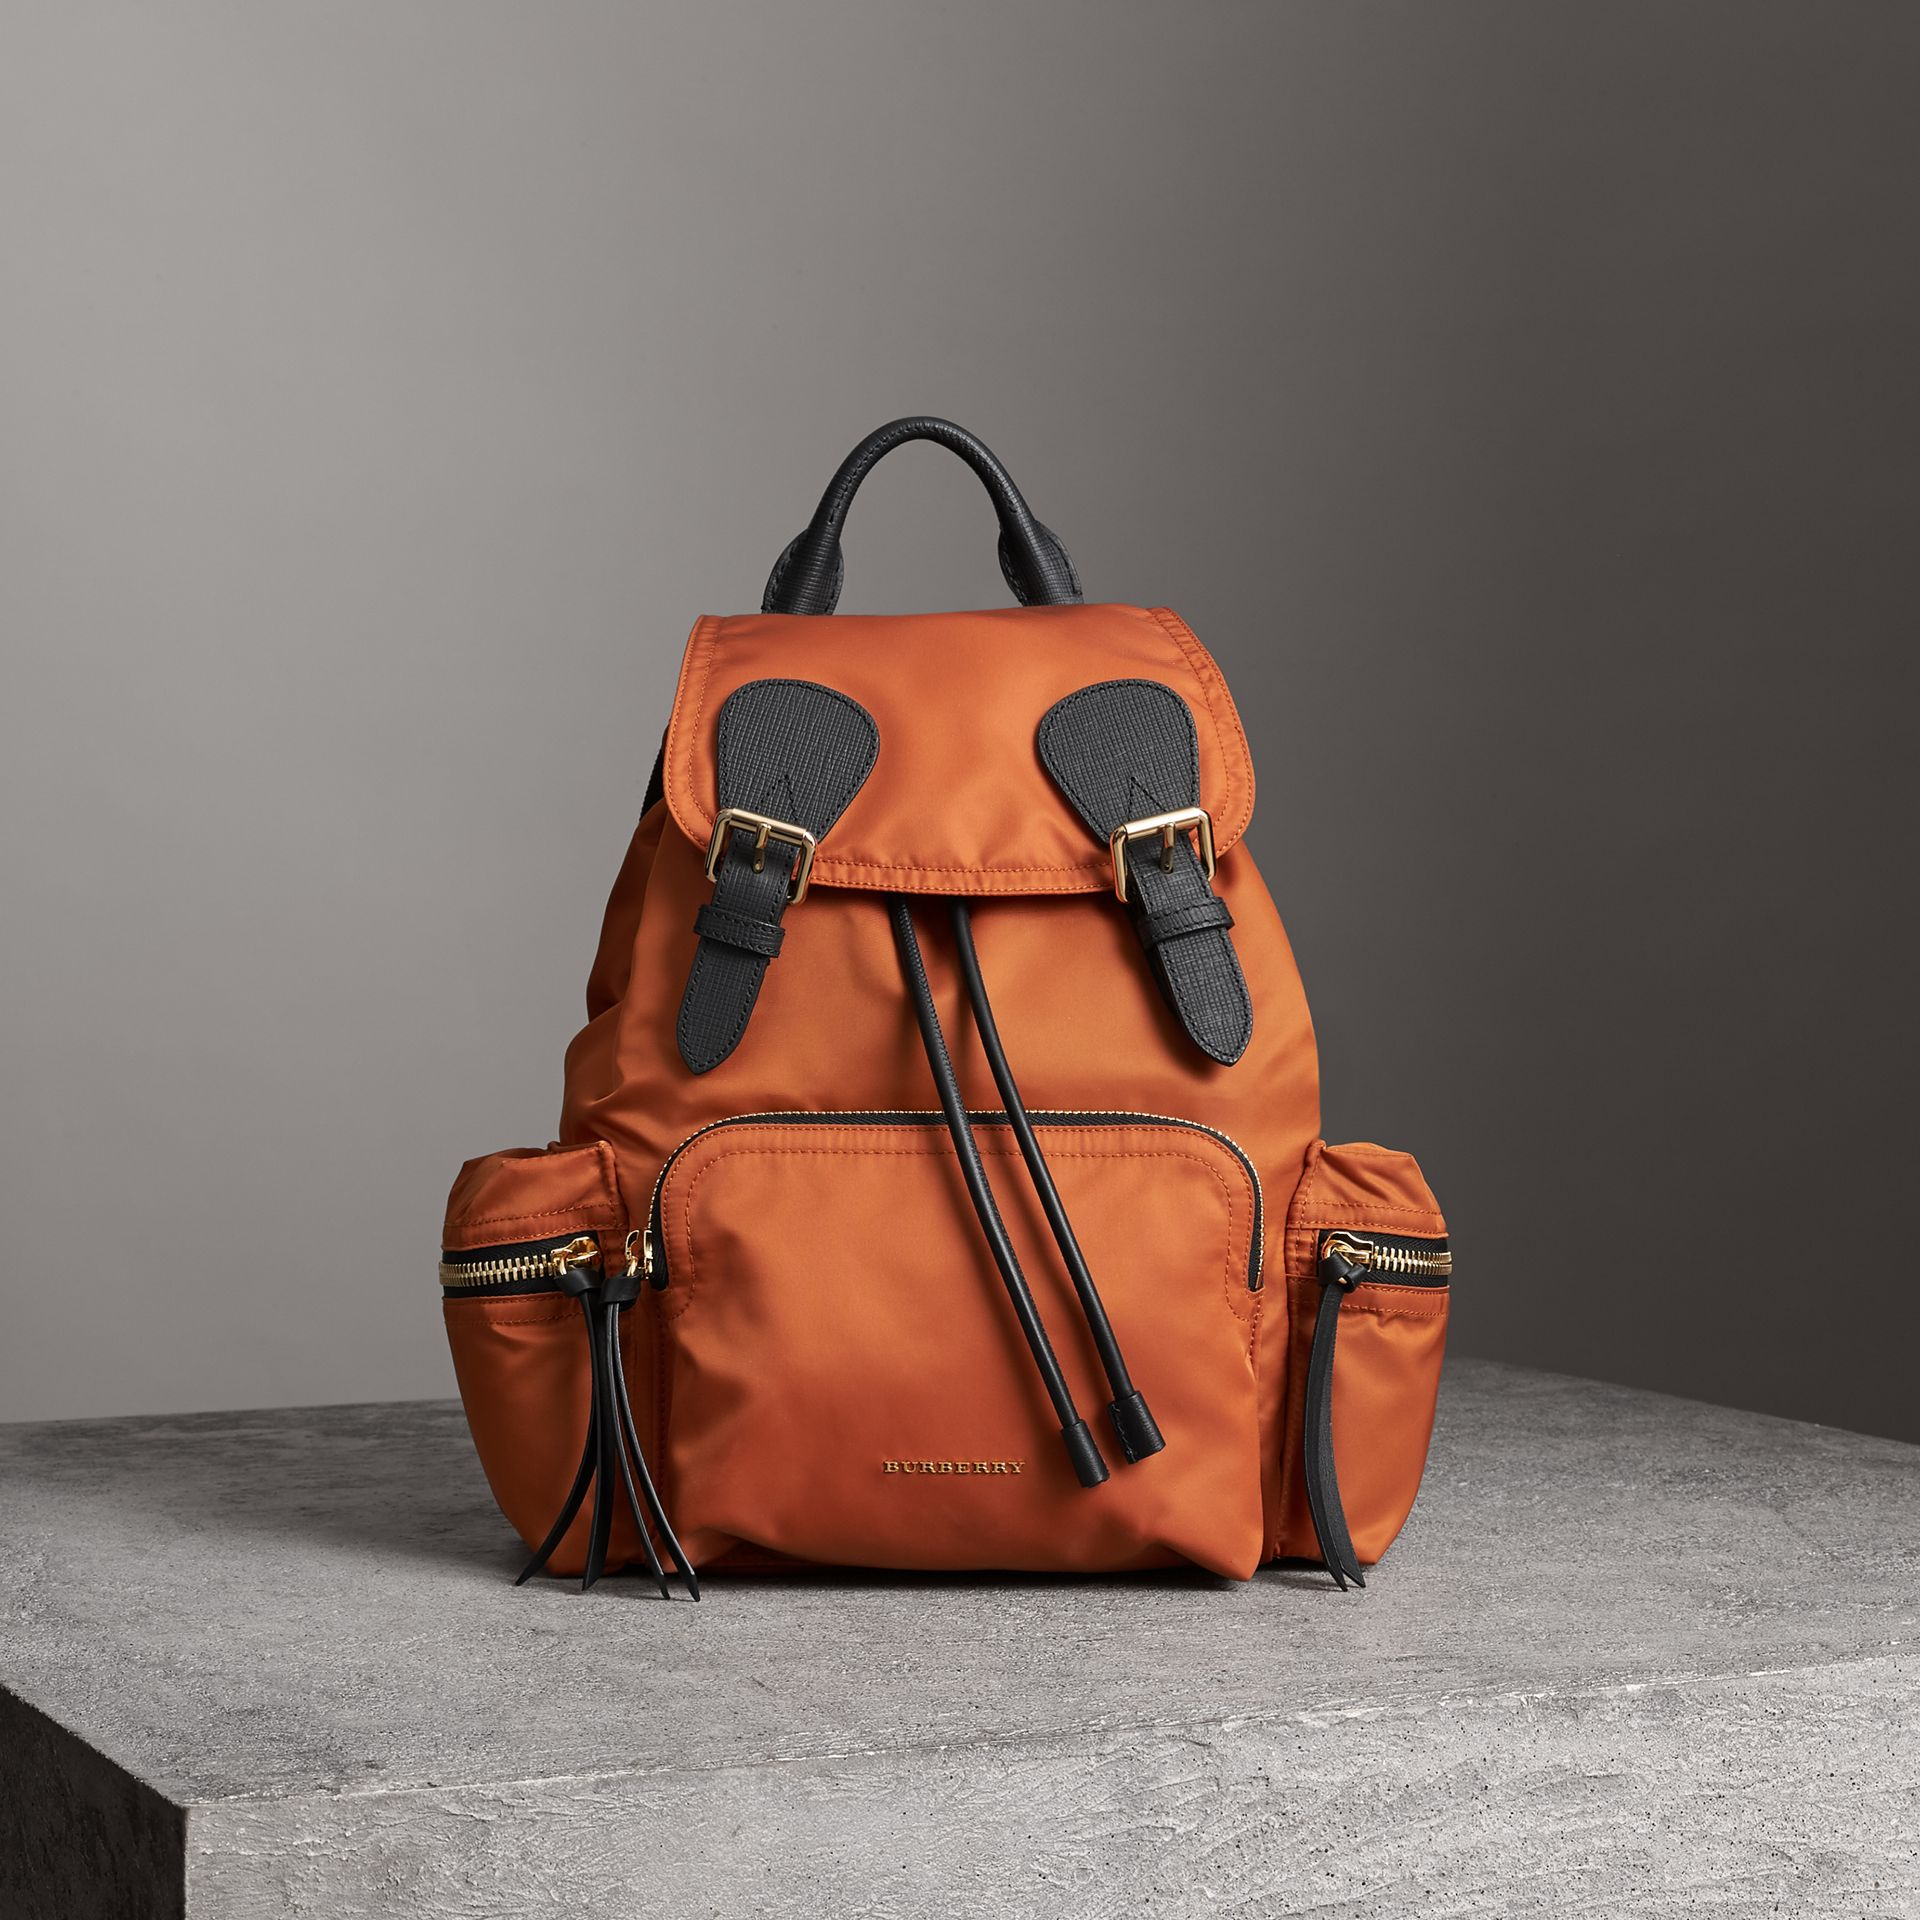 Zaino The Rucksack medio in nylon tecnico e pelle (Clementina) - Donna | Burberry - immagine della galleria 6